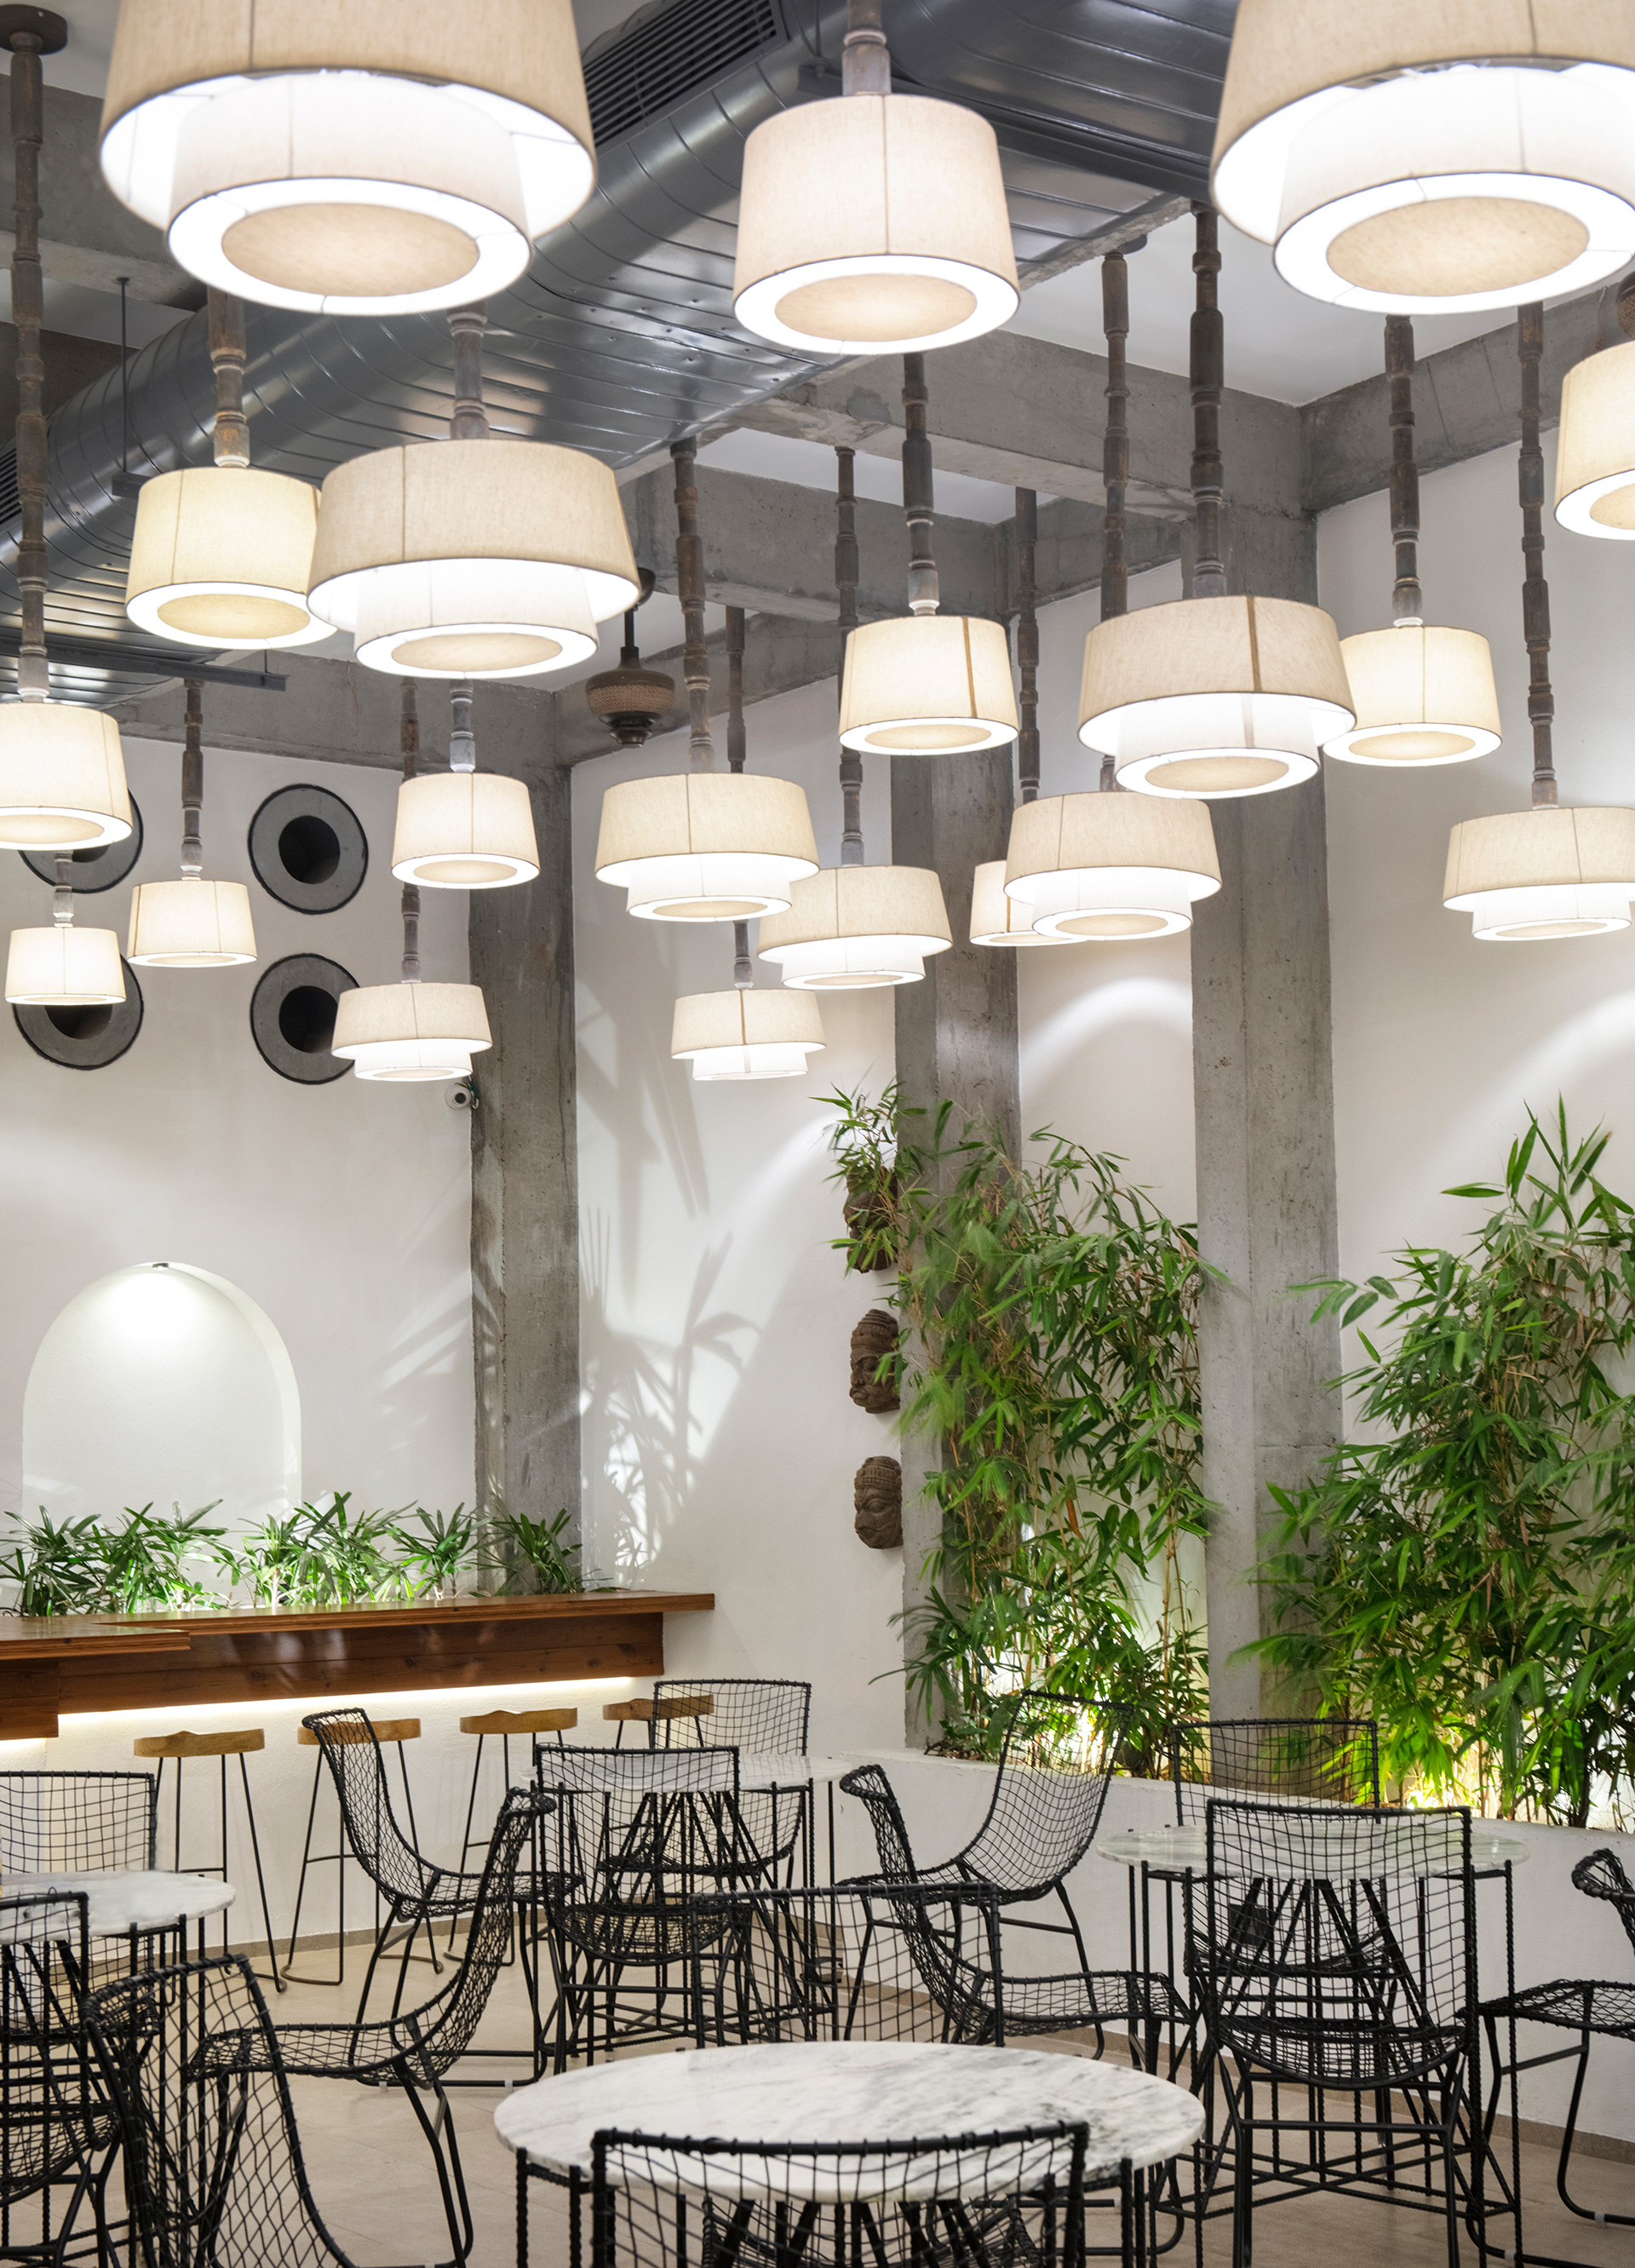 Customised pendant lamps in the interiors render a soft illumination, while light filtered through planters draw abstract silhouettes on walls | The Village Café | Portal 92 | STIRworld